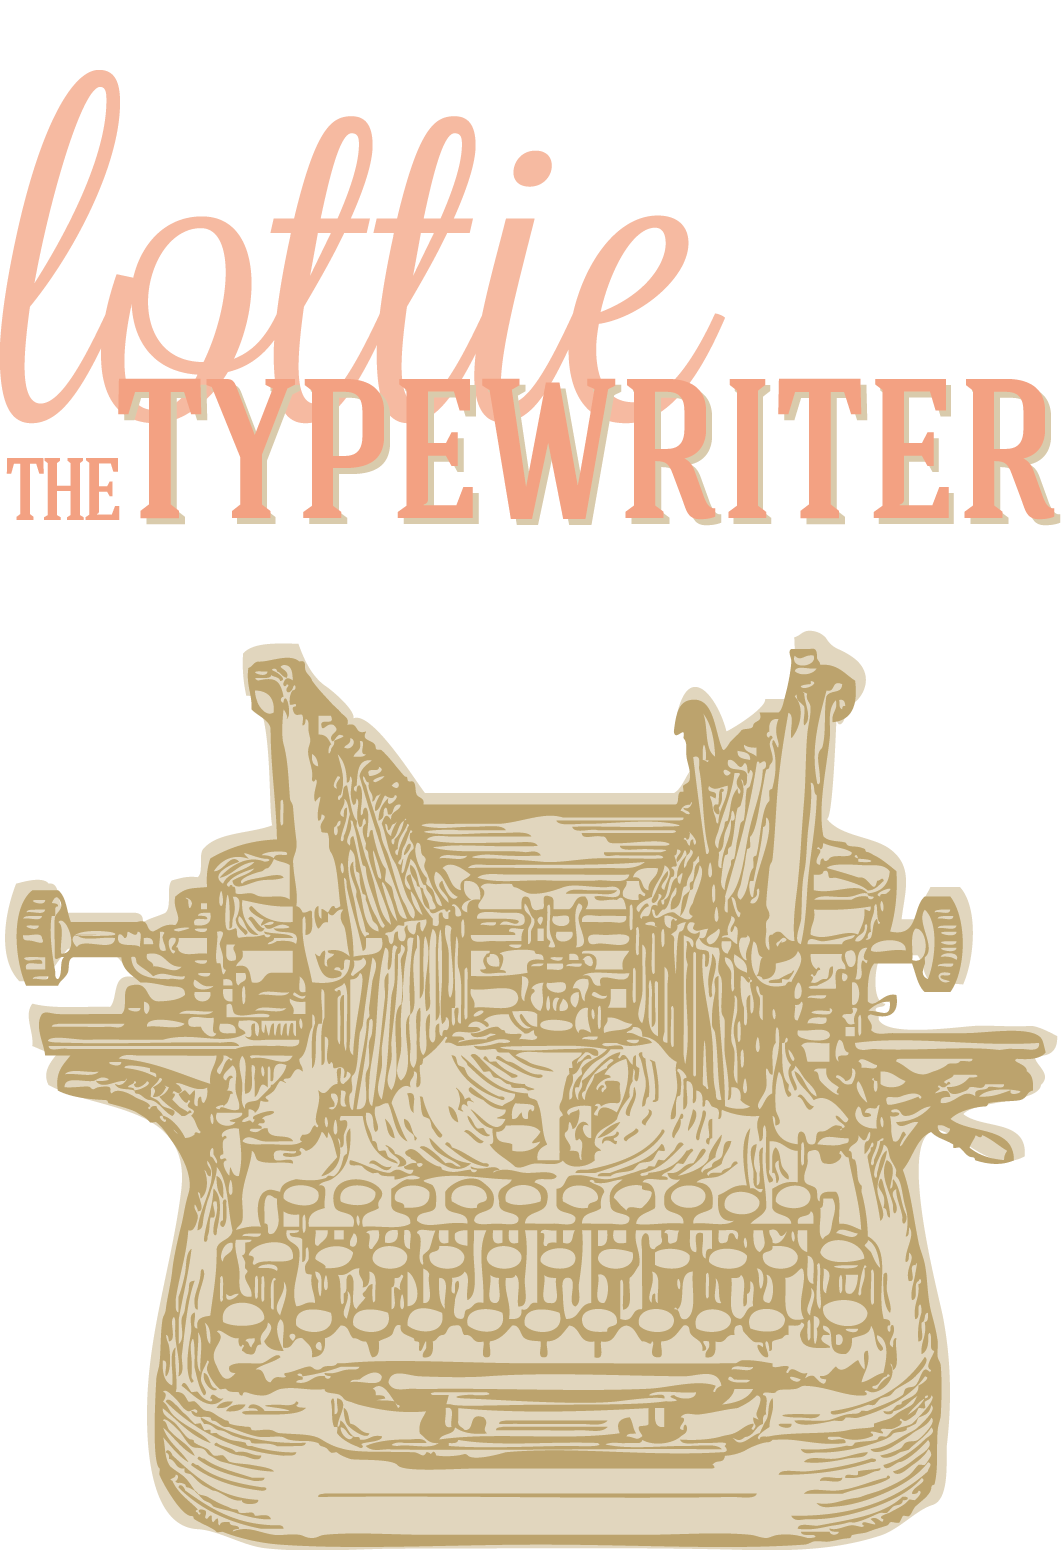 Lottie The Typewriter